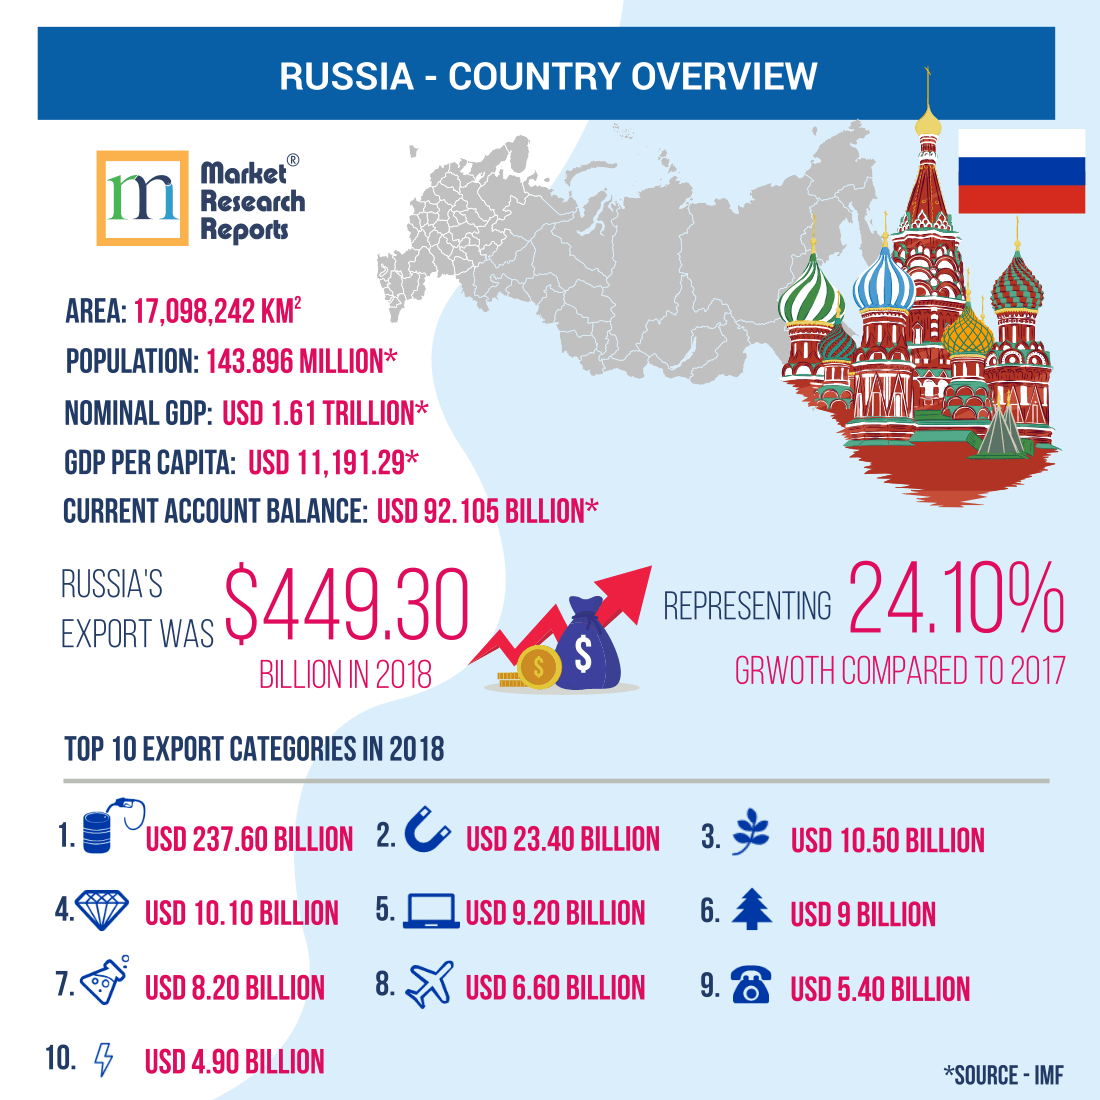 Russia - Country Overview